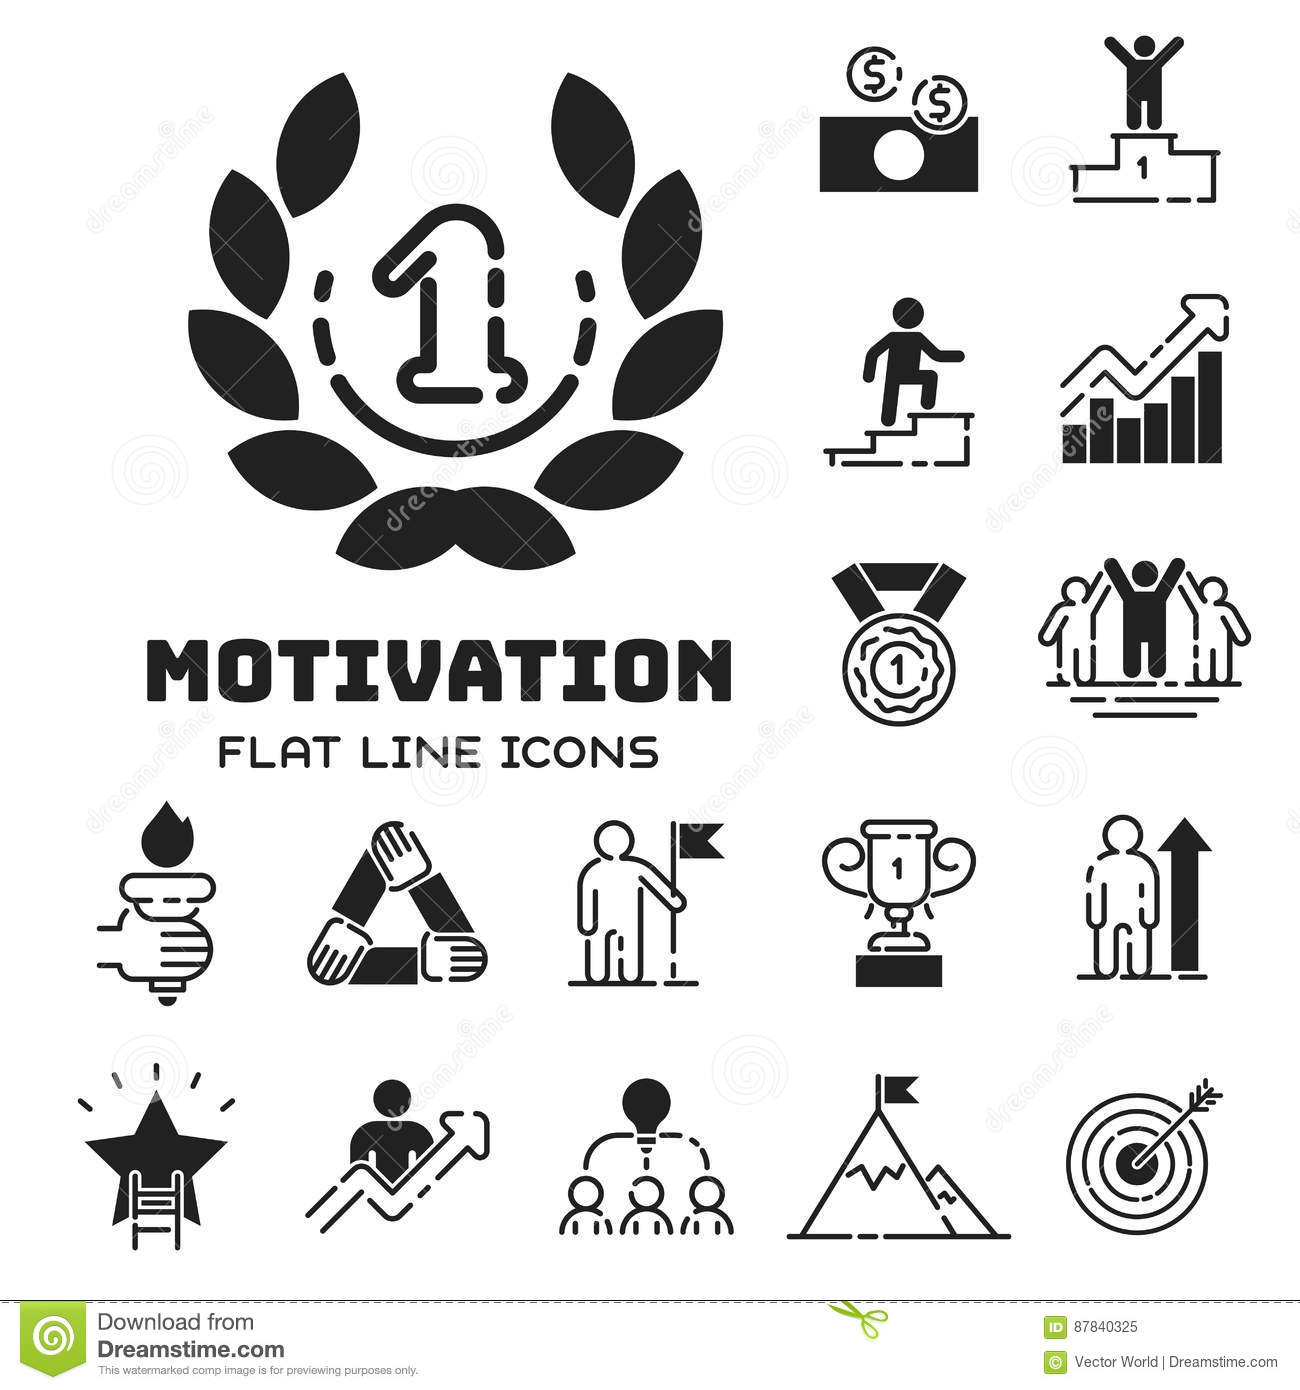 Pg3 moreover 3 in addition Pg3 besides Verification Of Delivery List Clipboard Symbol 45802 in addition Stock Illustration Motivation Concept Chart Icon Business Strategy Development Design Management Leadership Teamwork Growth Career Idea Image87840325. on employee training plan outline